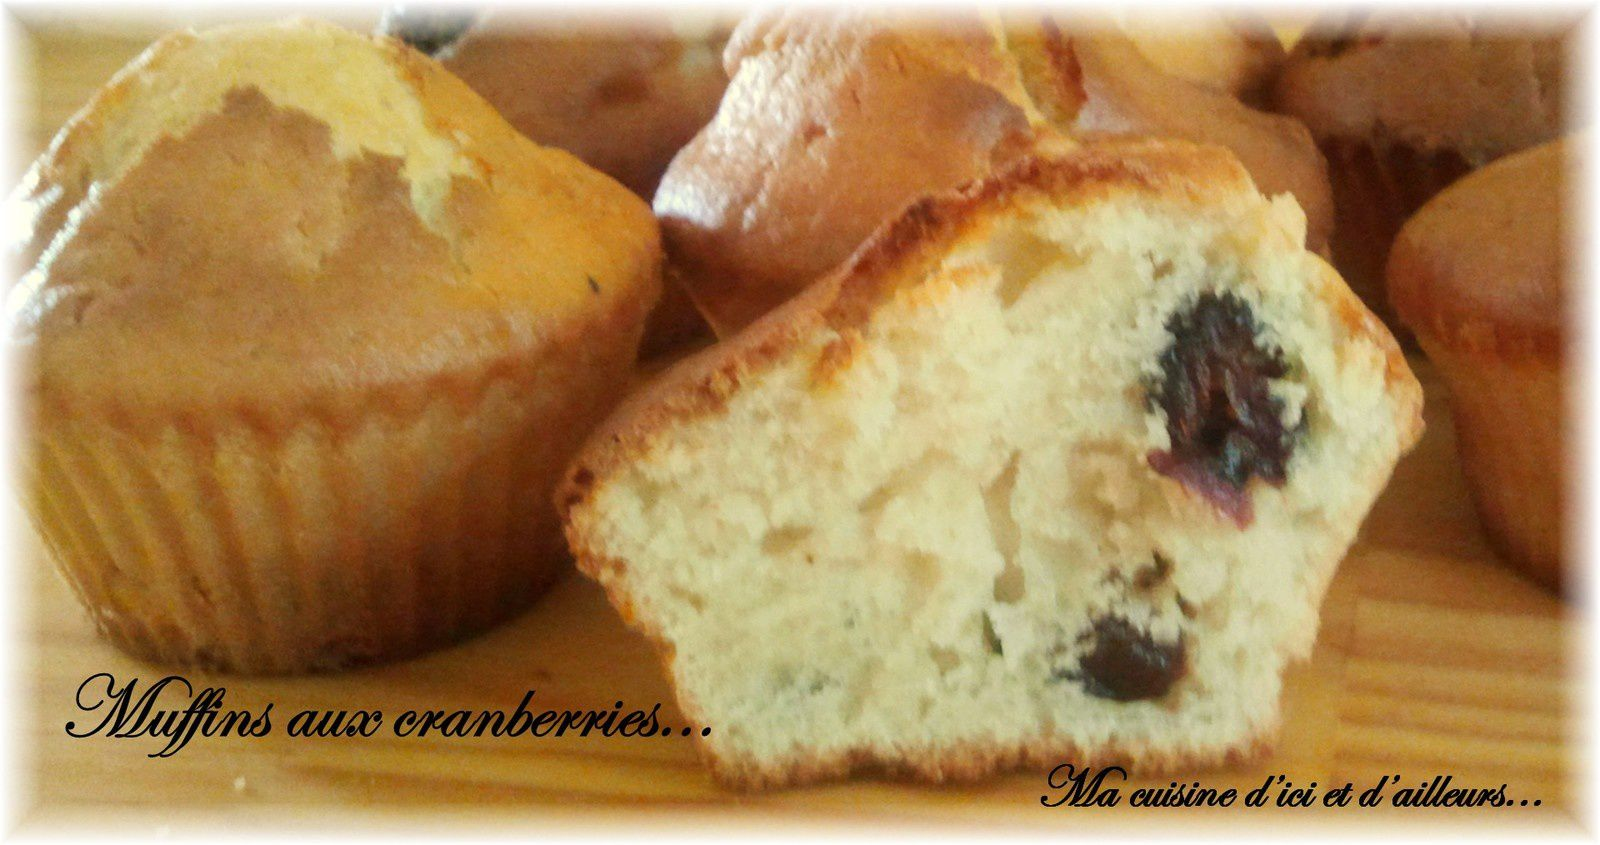 Muffins aux cranberries...